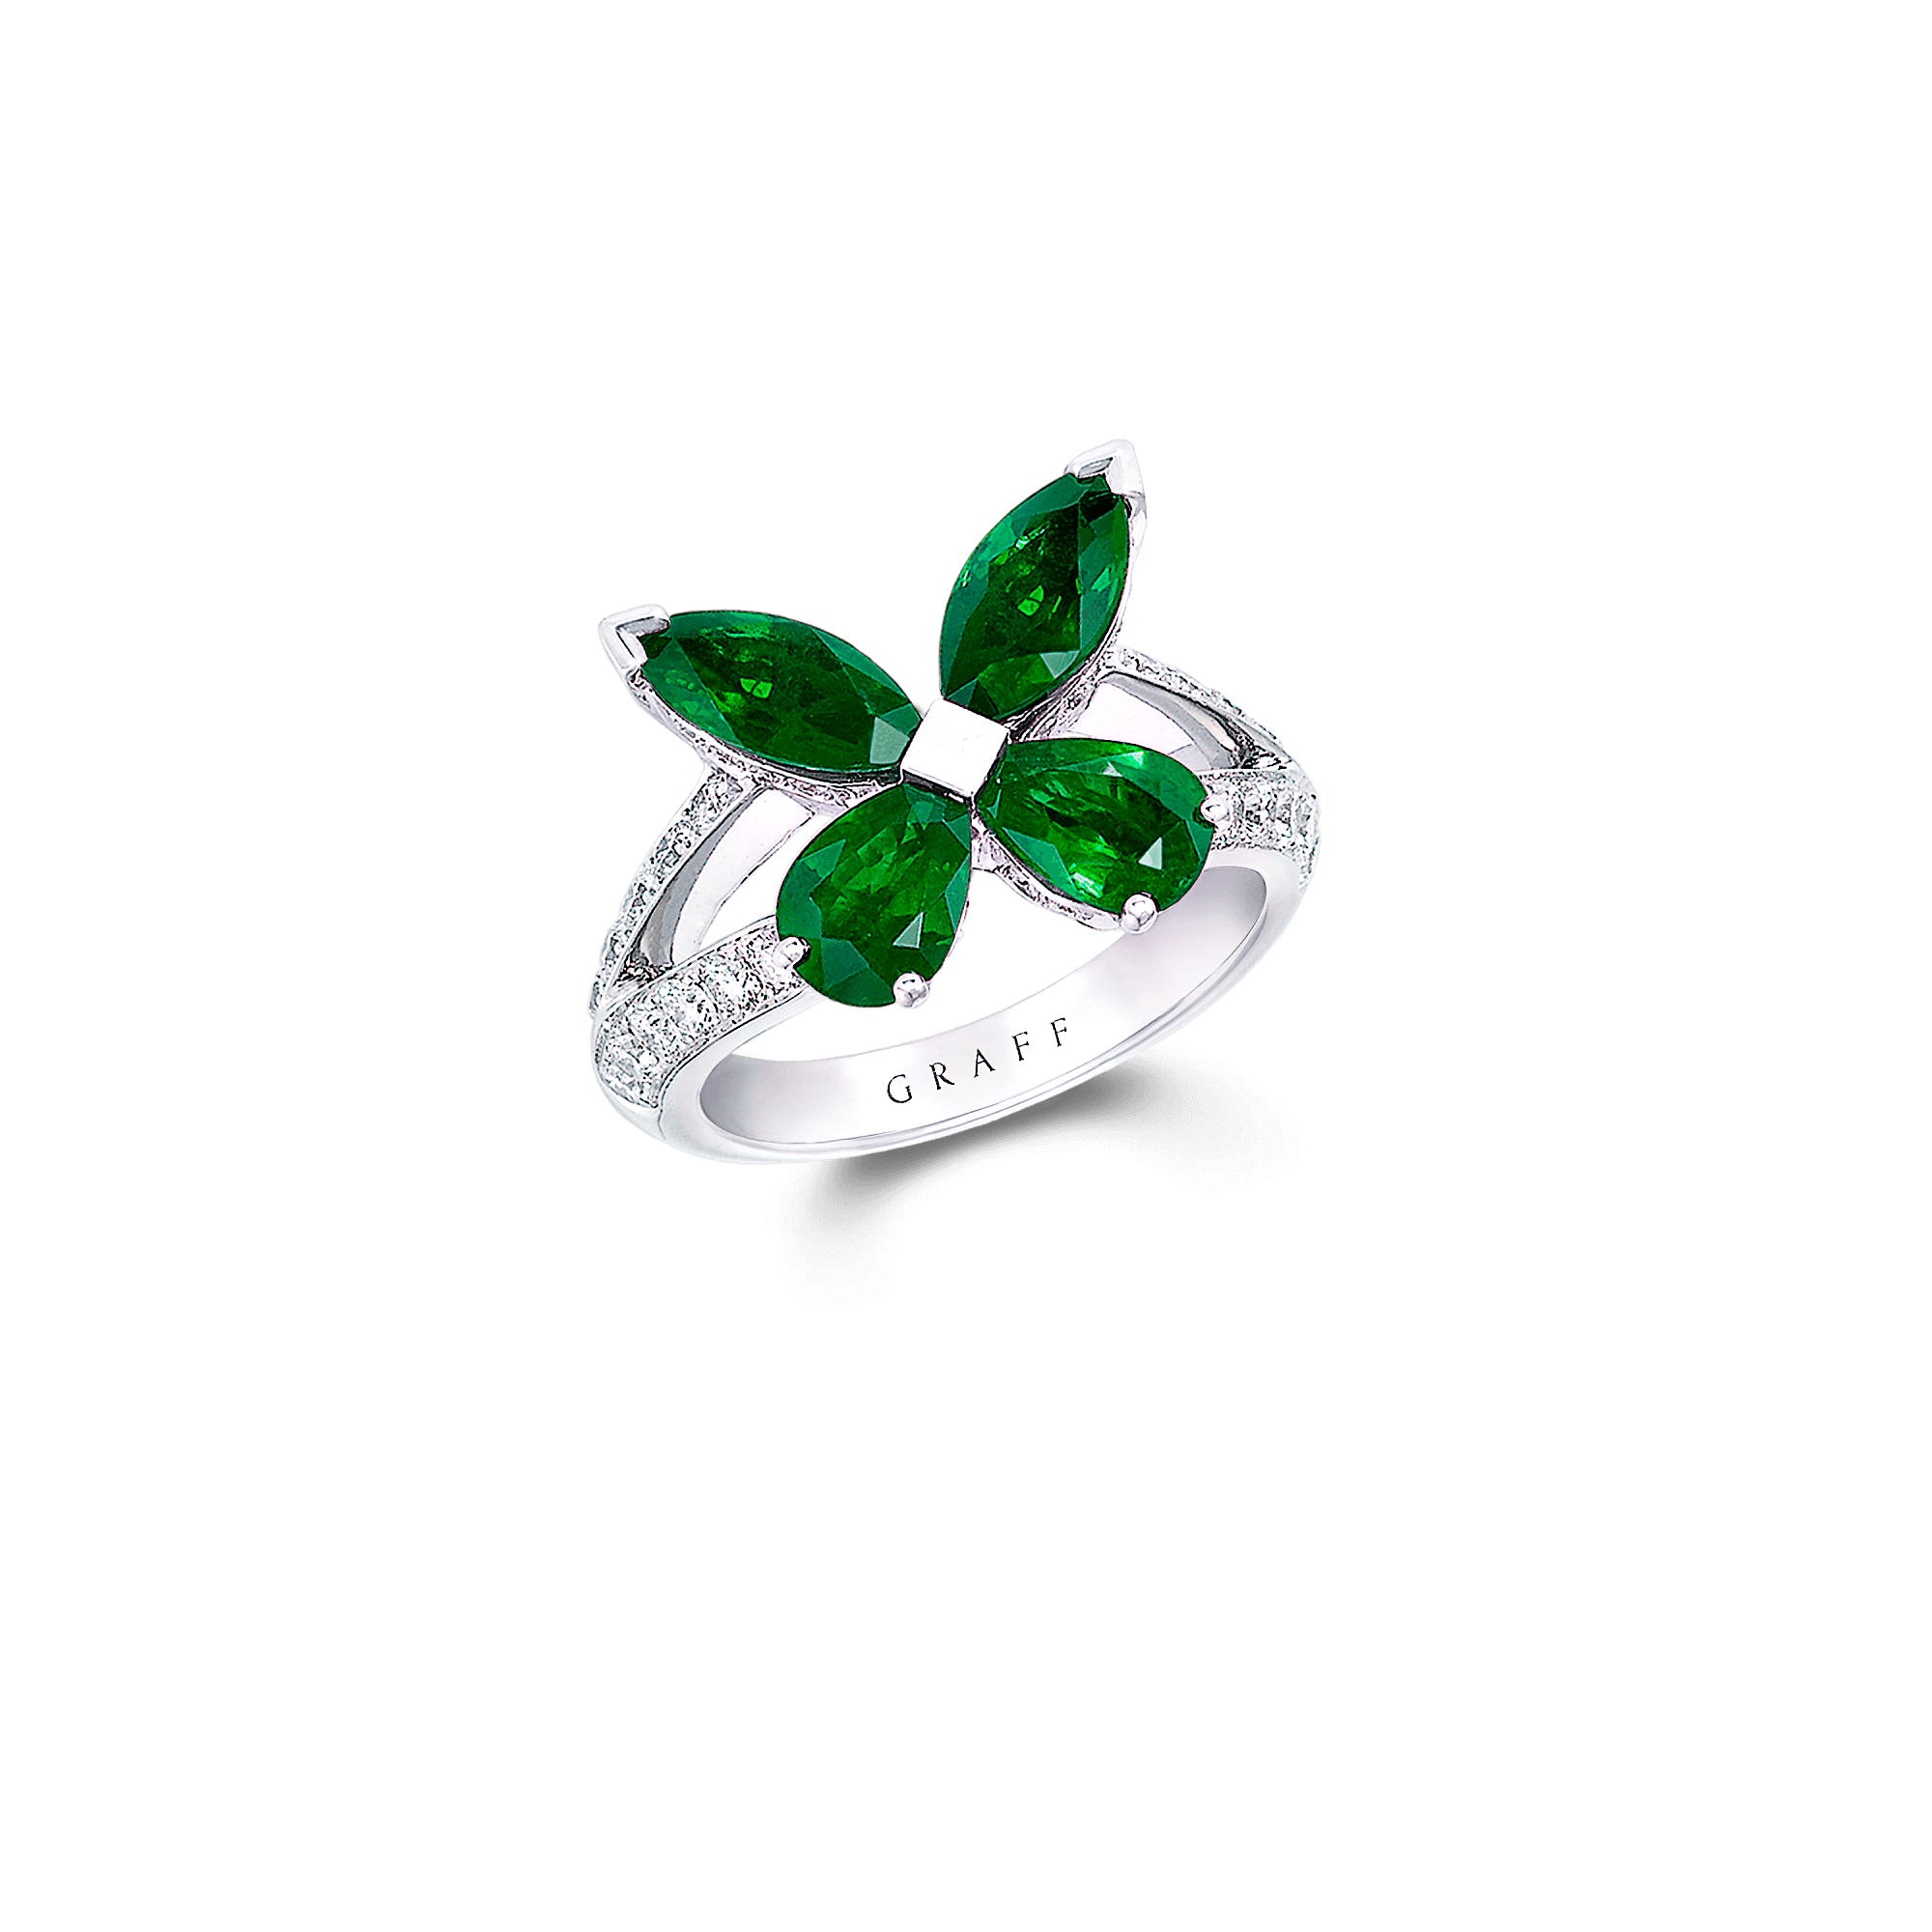 Jewels Archive Graff Classic ring, Favorite rings, Jewelry